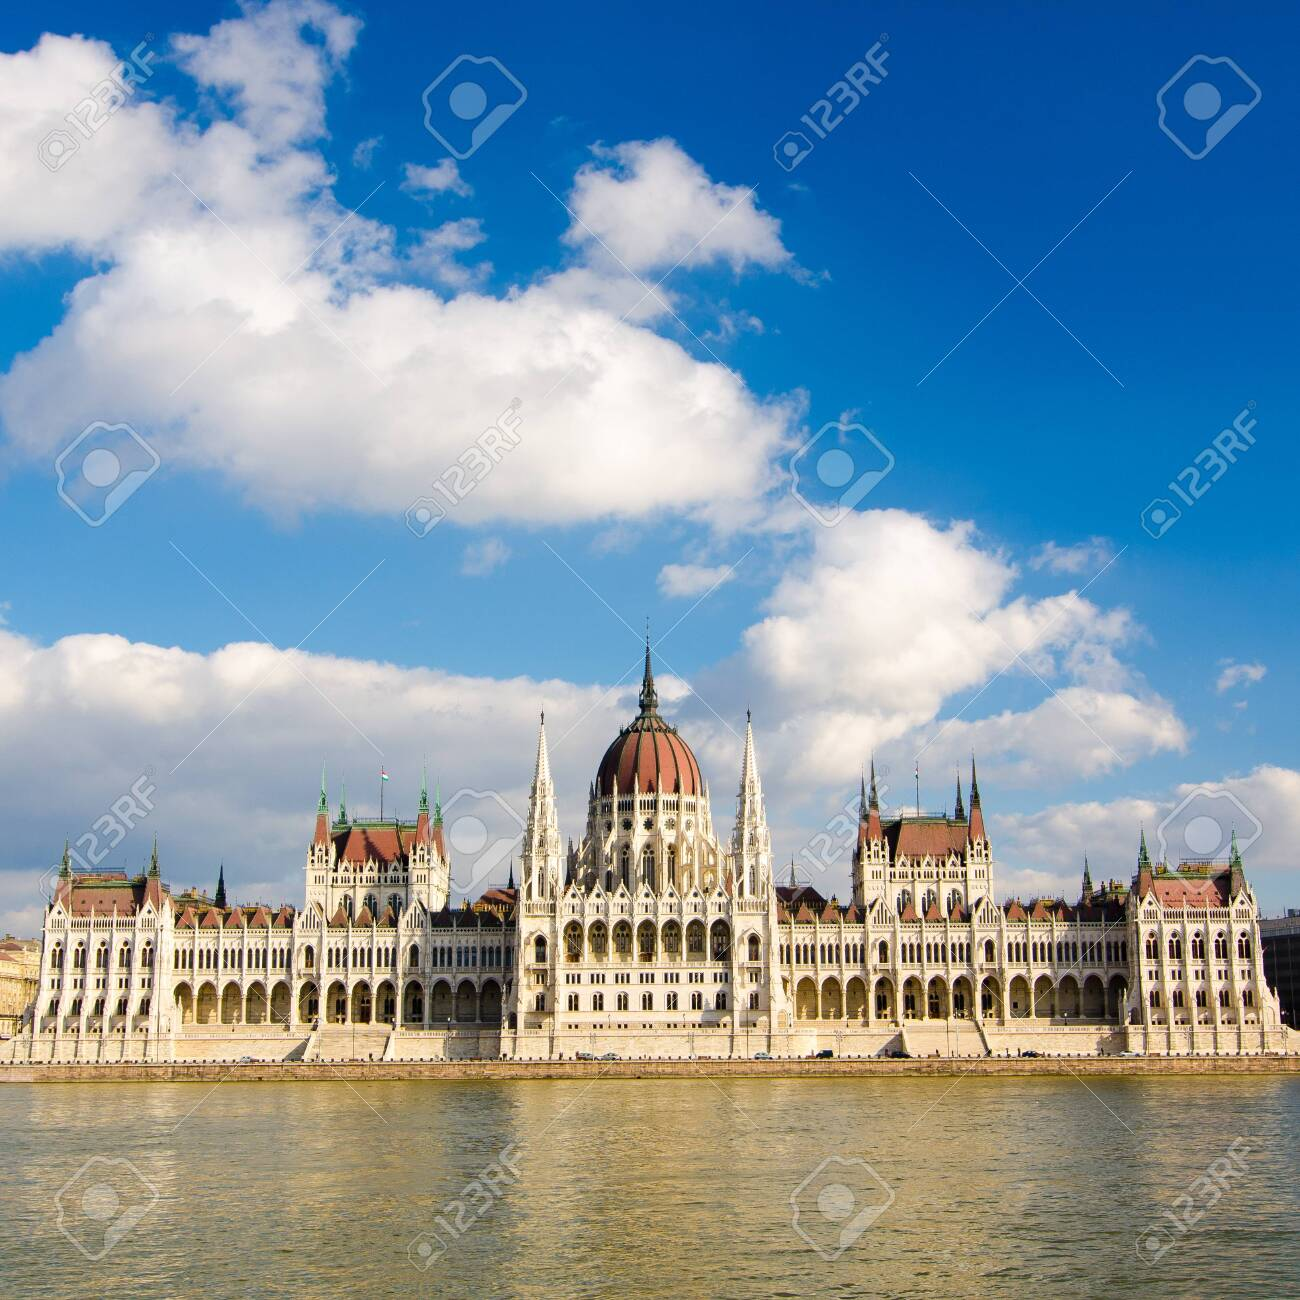 The Hungarian Parliament Building in Budapest, Hungary. - 145618827